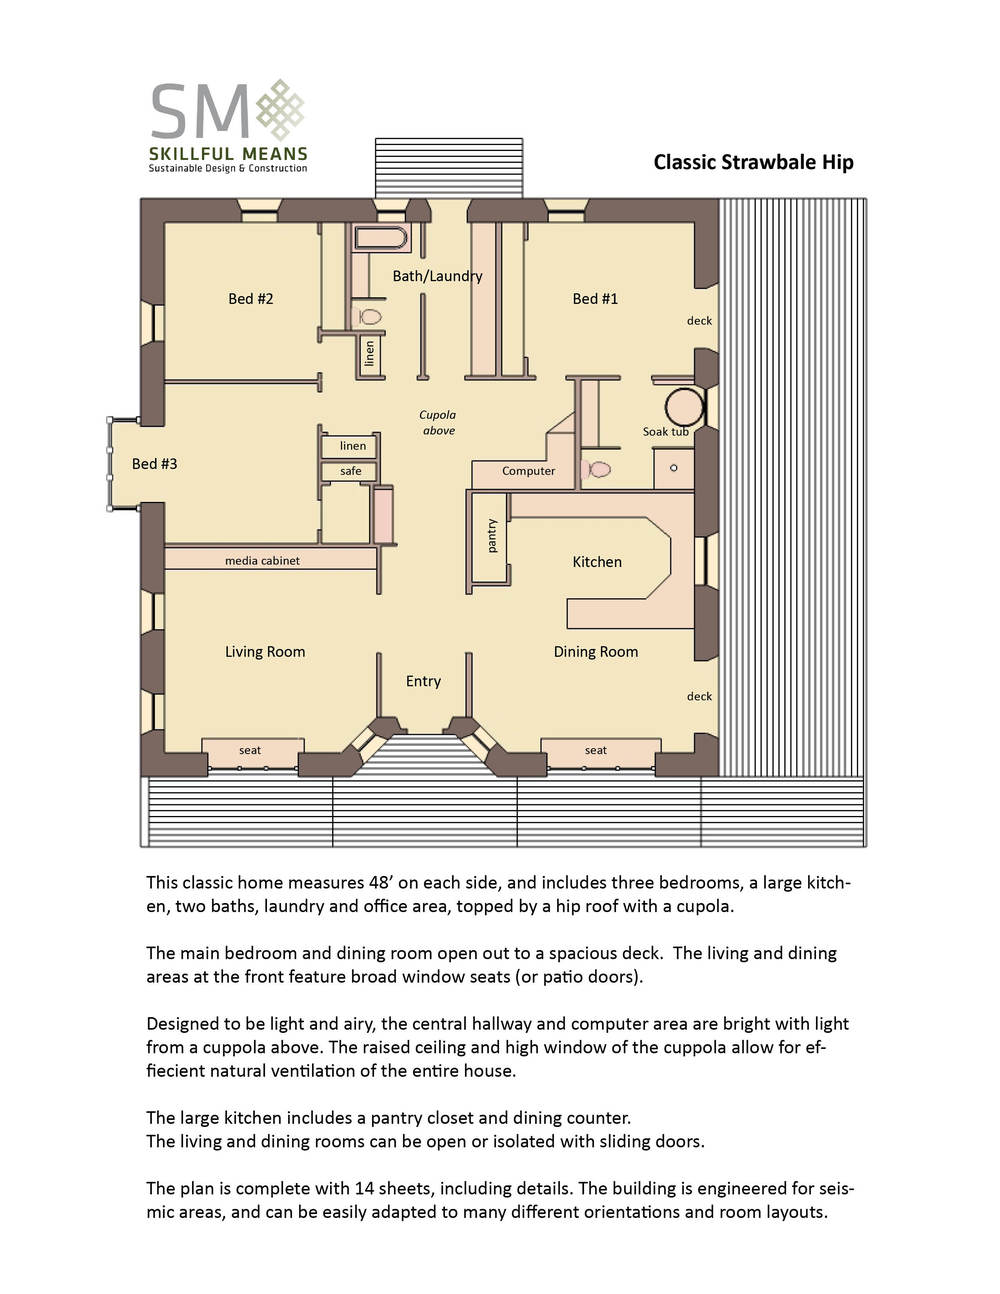 house plans classic strawbale hip